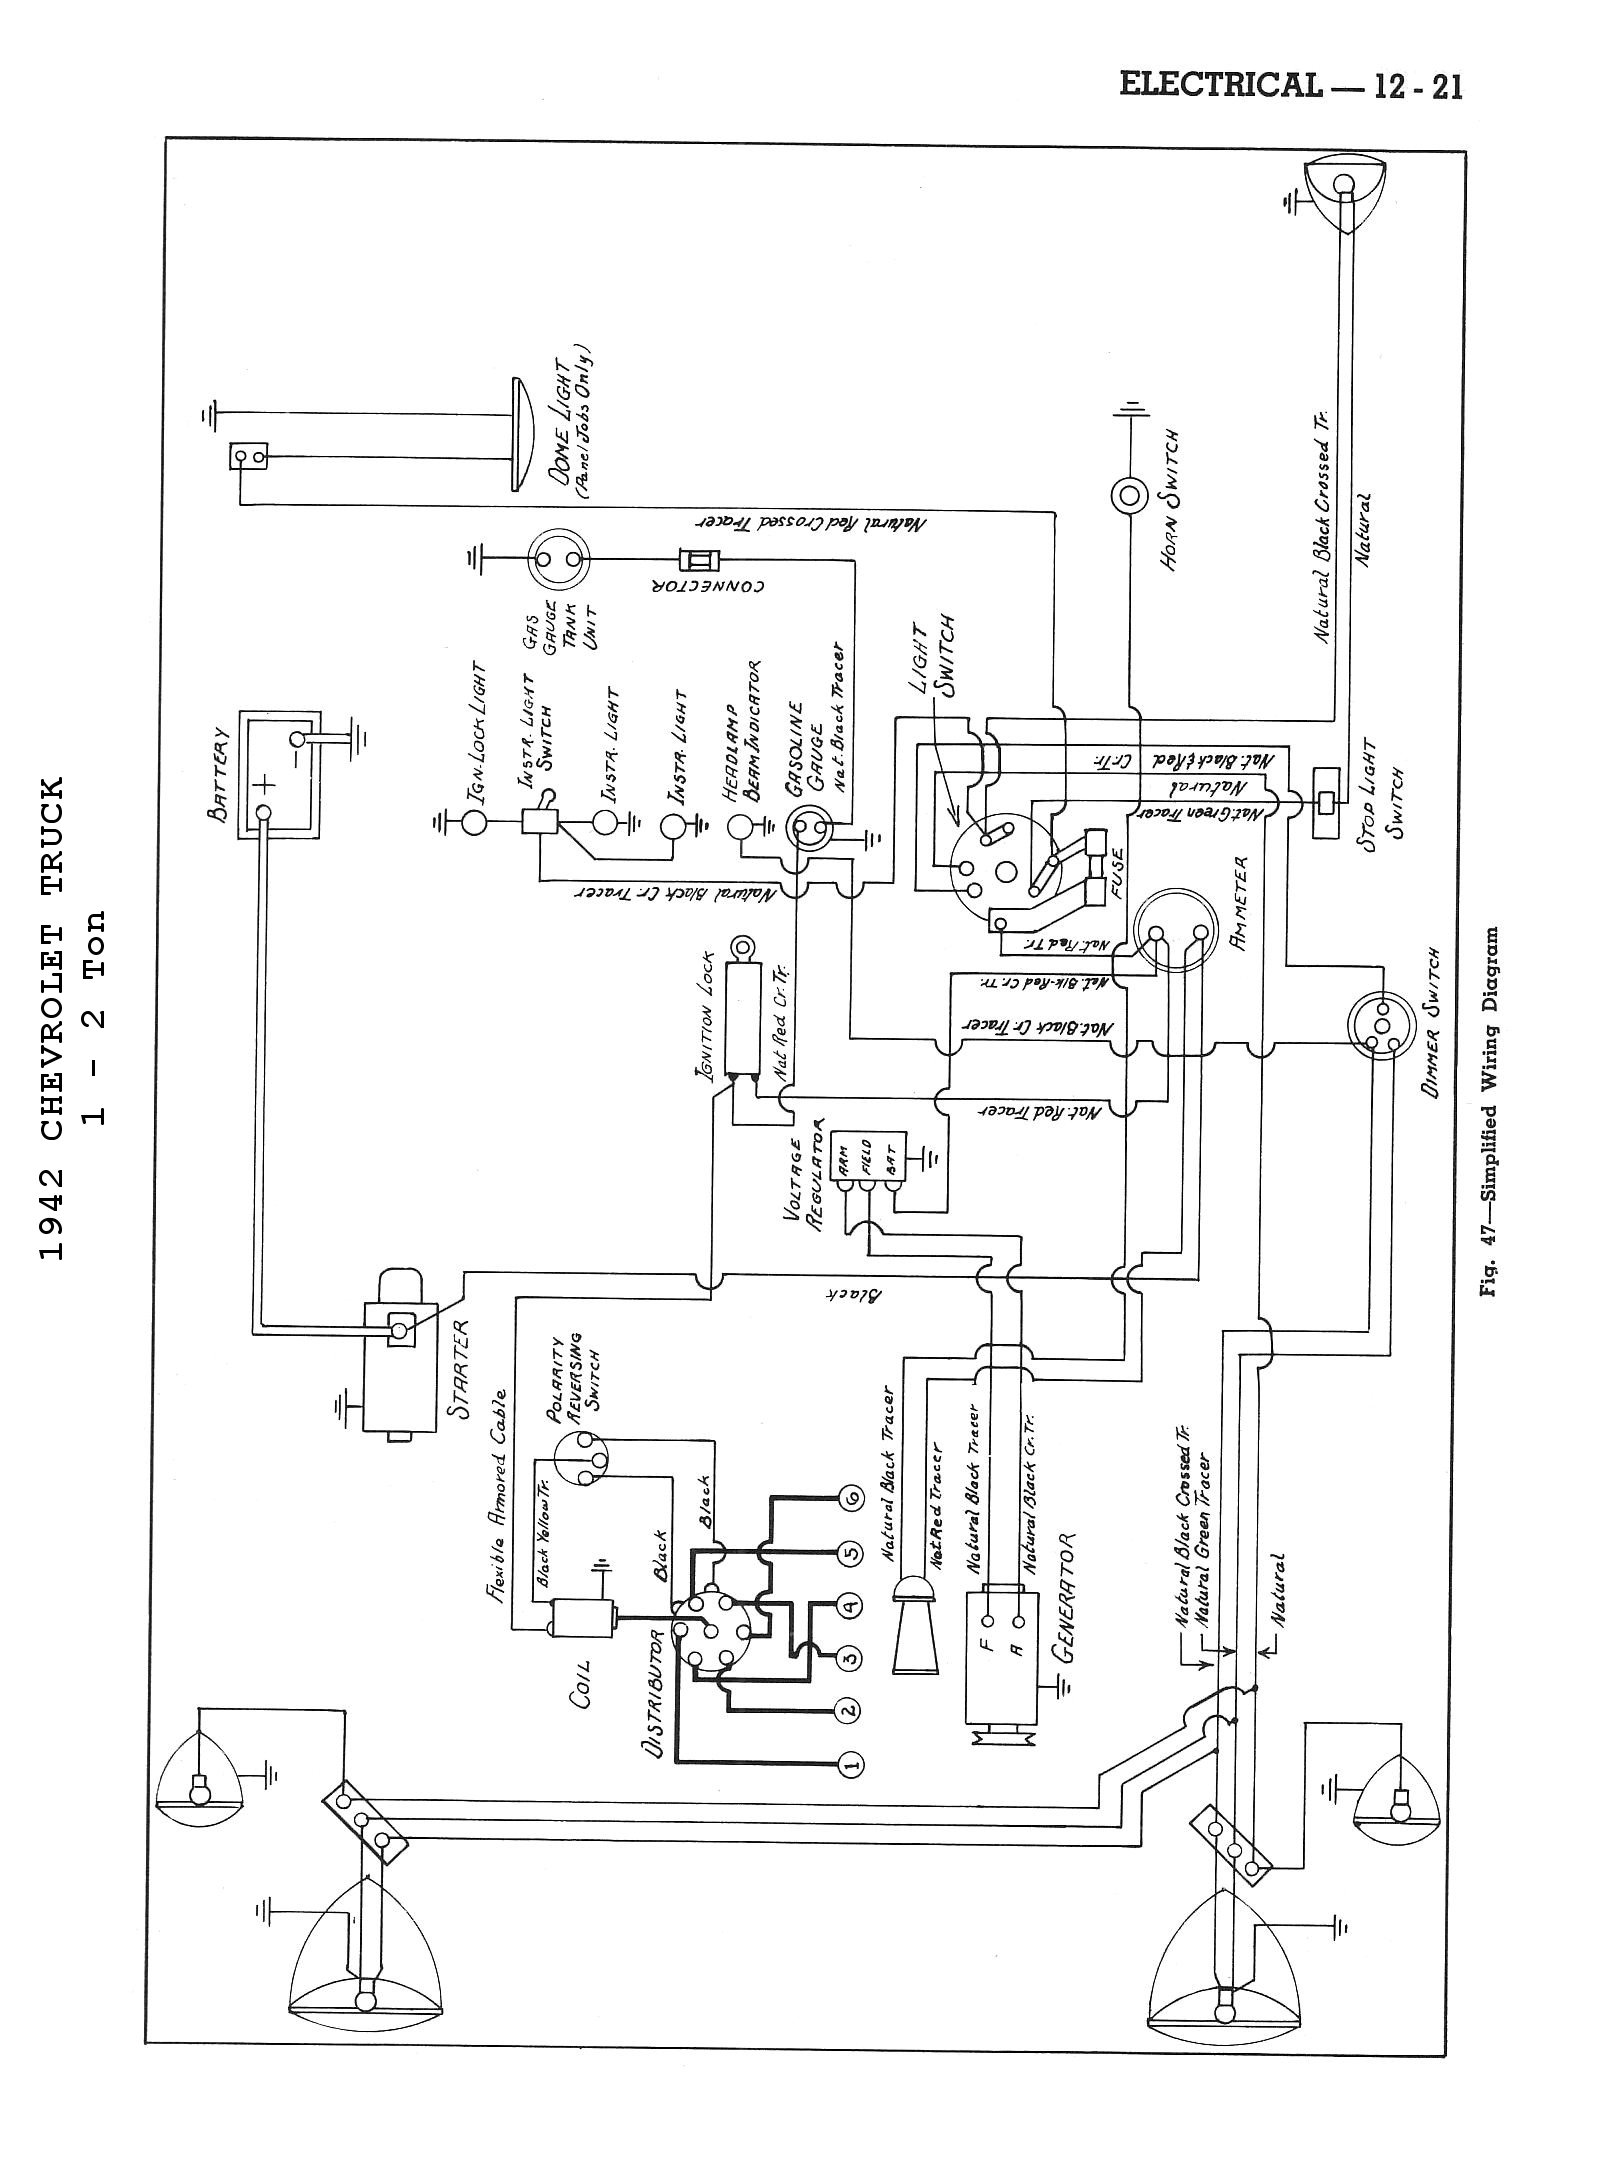 1942 Chevy Wiring Diagram Wiring Diagram Data Val